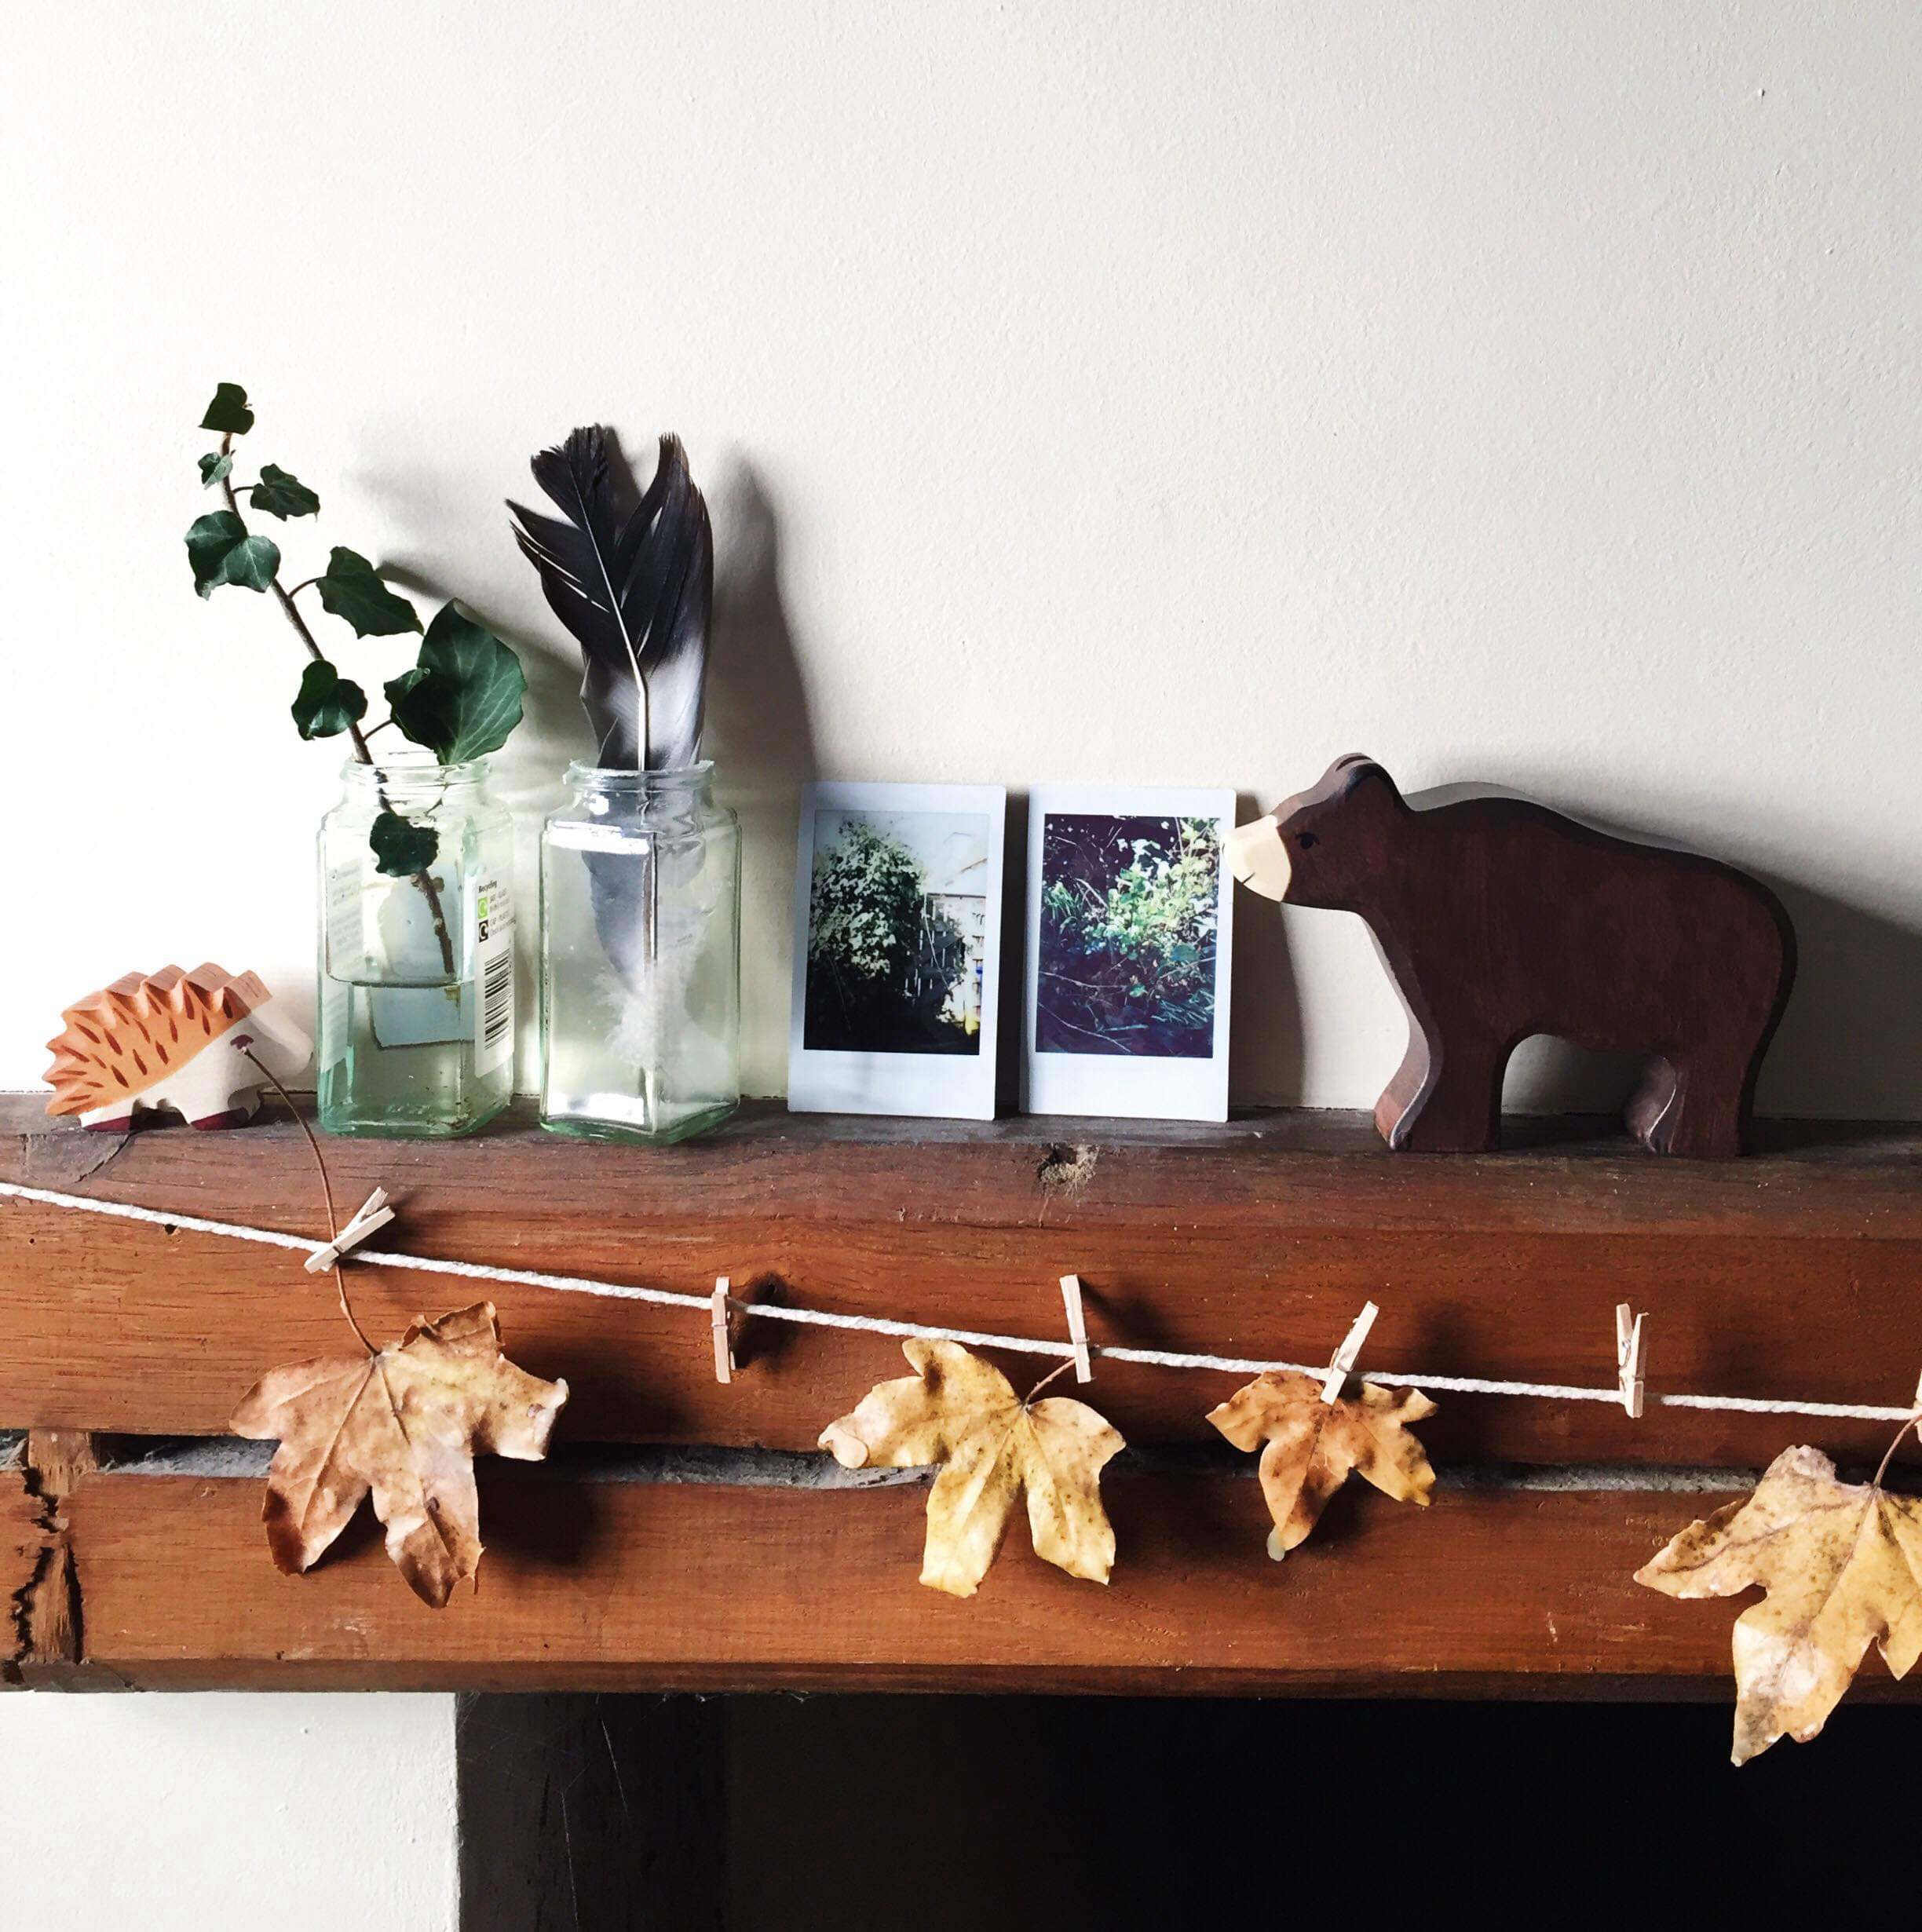 We created this leaf garland over autumn, and made small vases from empty spice jars. Sometimes I take out our polaroid camera for nature walks, and I love the idea of getting Eilish her own little one to record things for herself when she's a little older.